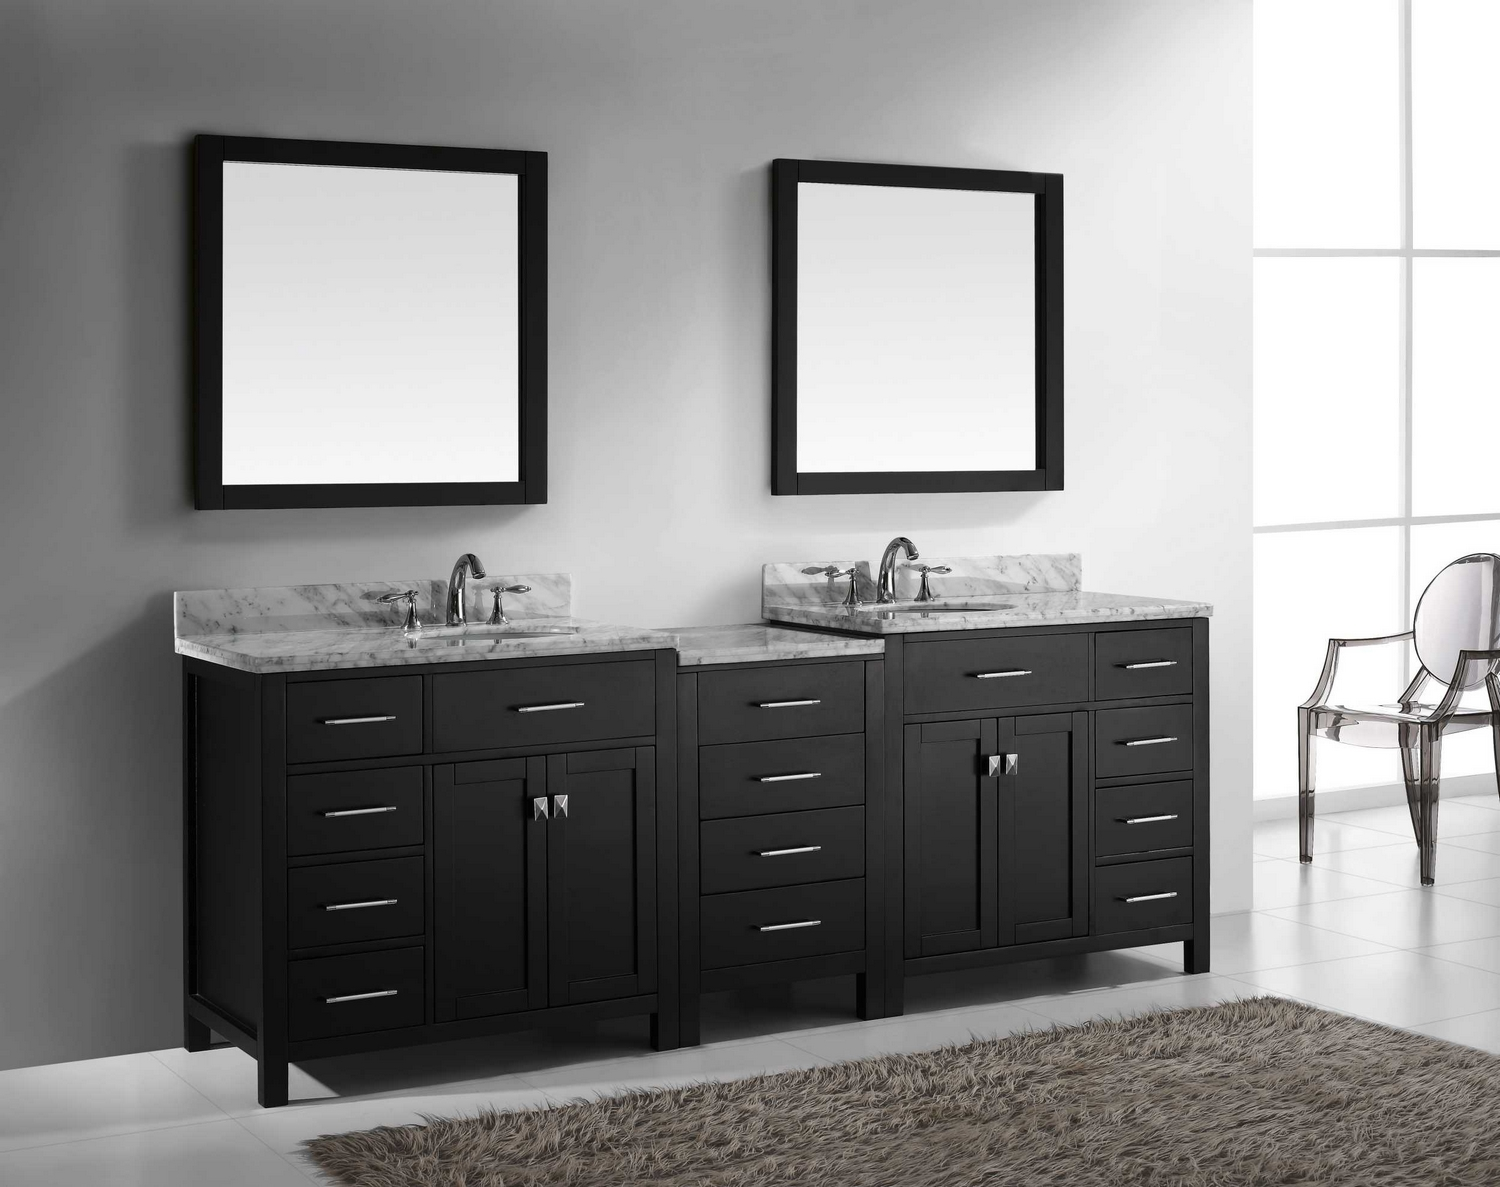 virtu usa caroline parkway 93 double bathroom vanity cabinet set in